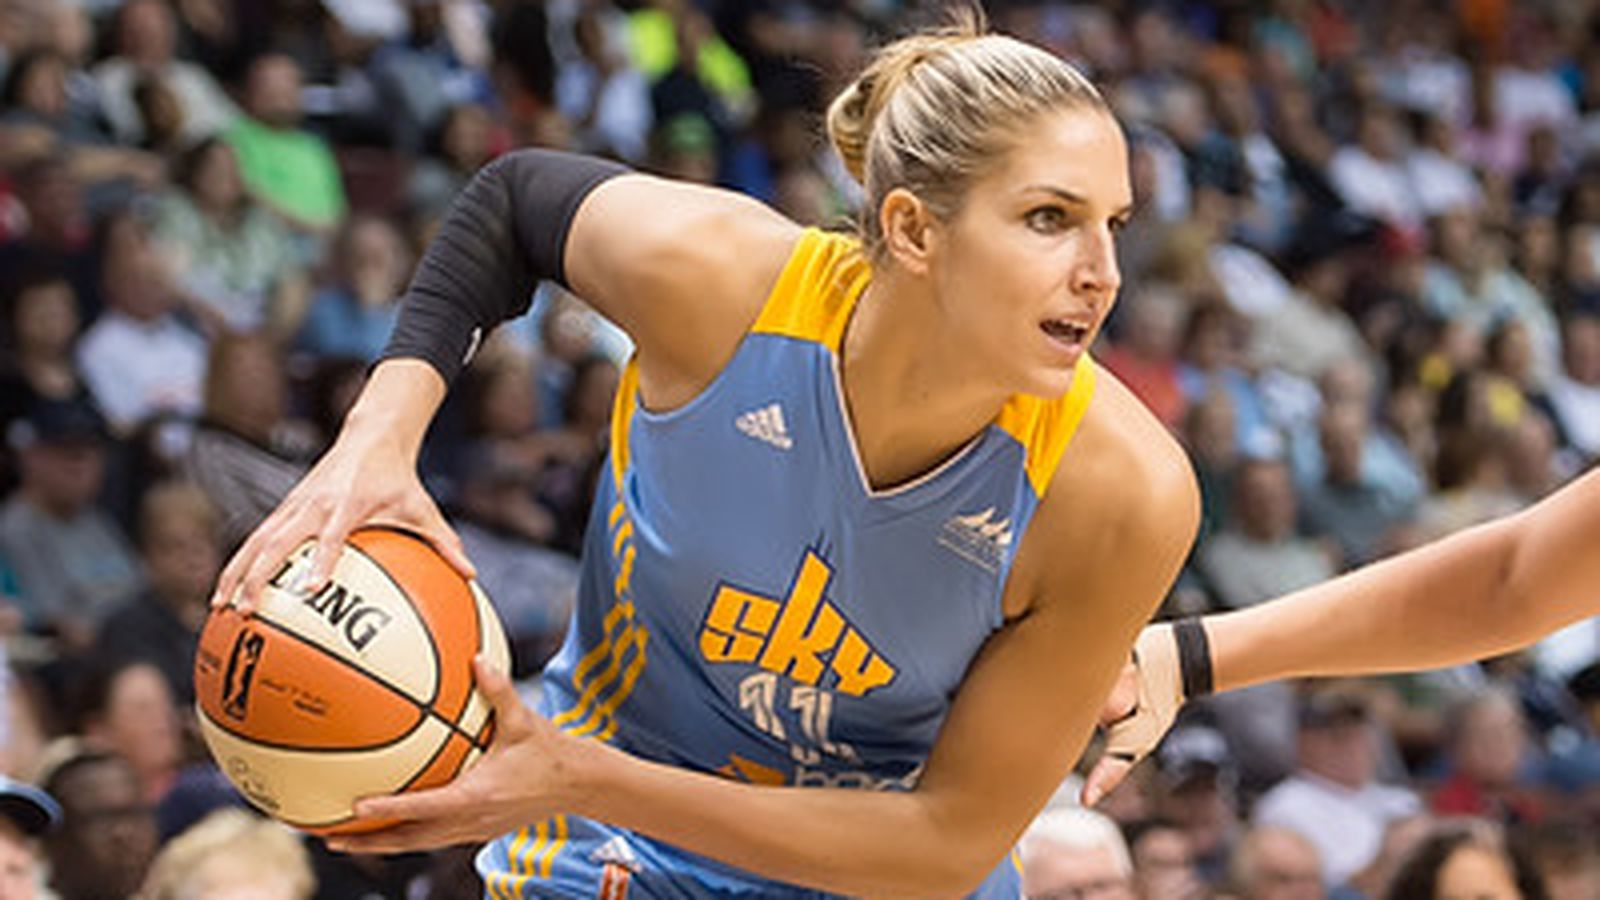 New Elena Delle Donne Nike Commerical - Swish Appeal